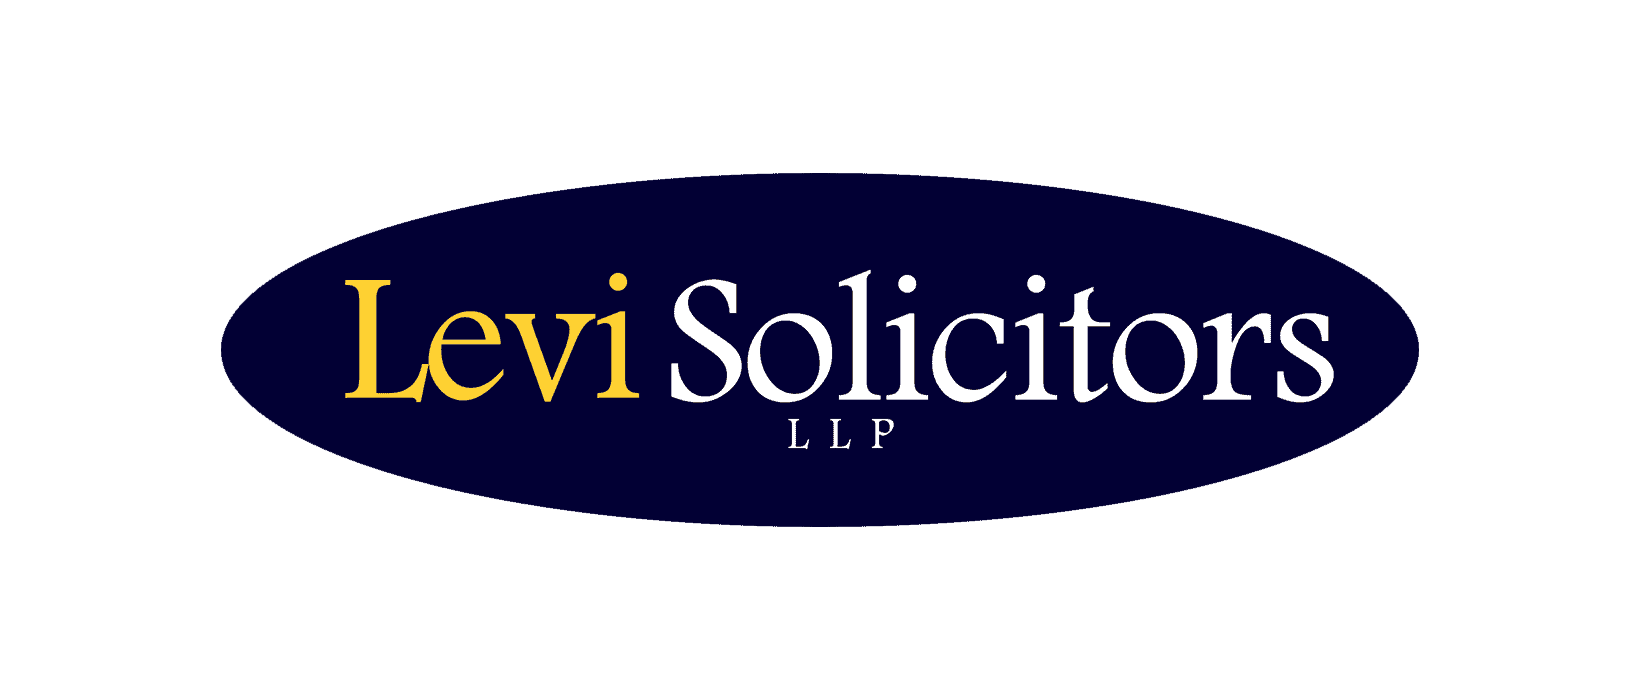 Naser Akhtar Author At Levi Solicitors Llp Page 4 Of 4